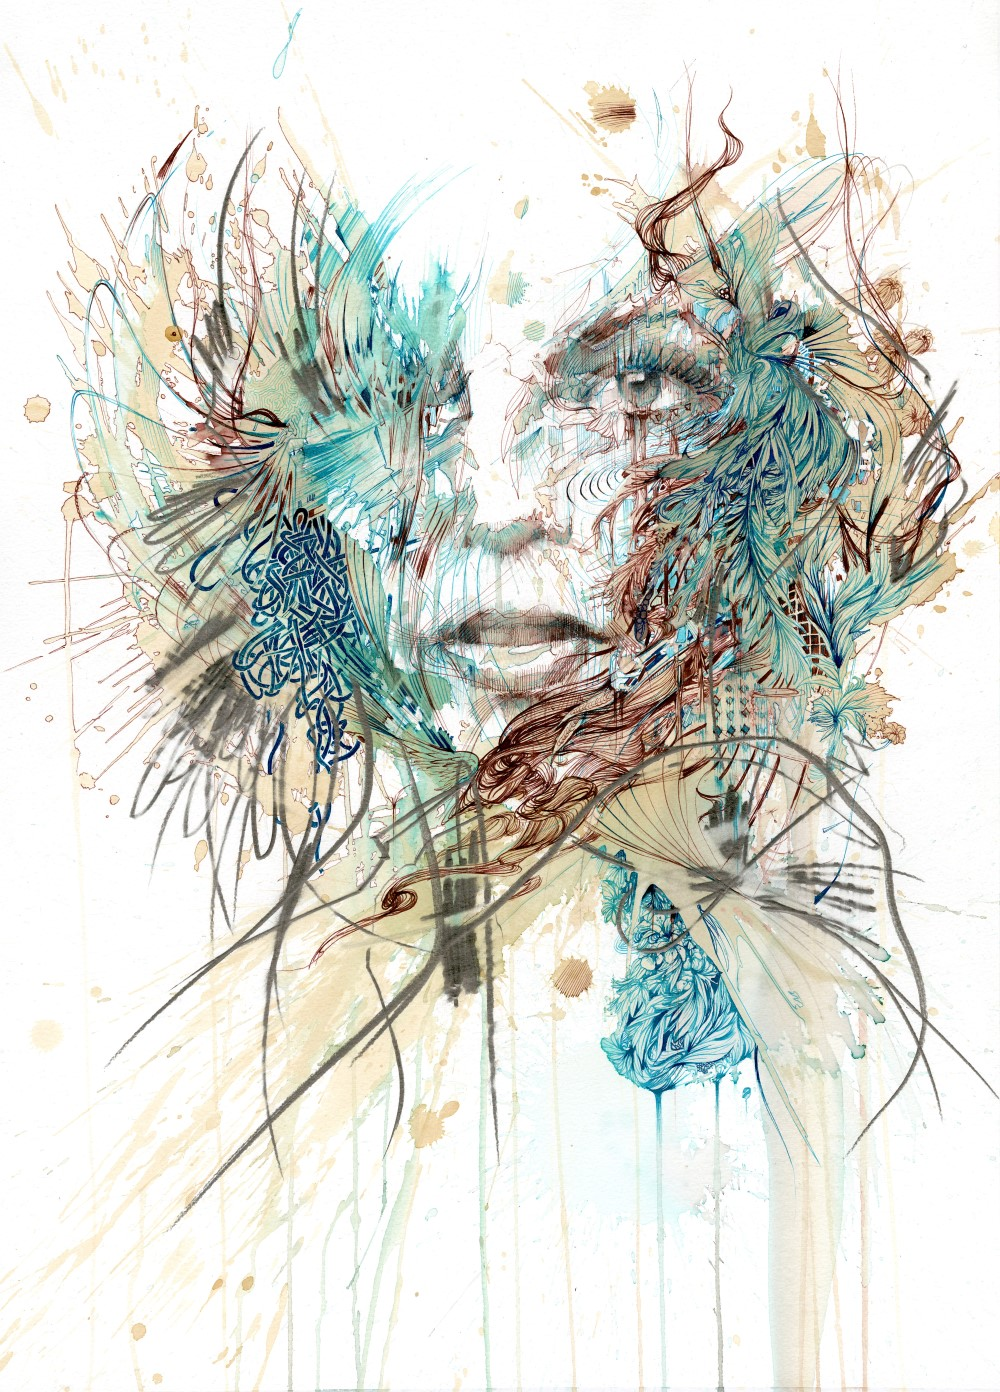 Fly by Carne Griffiths